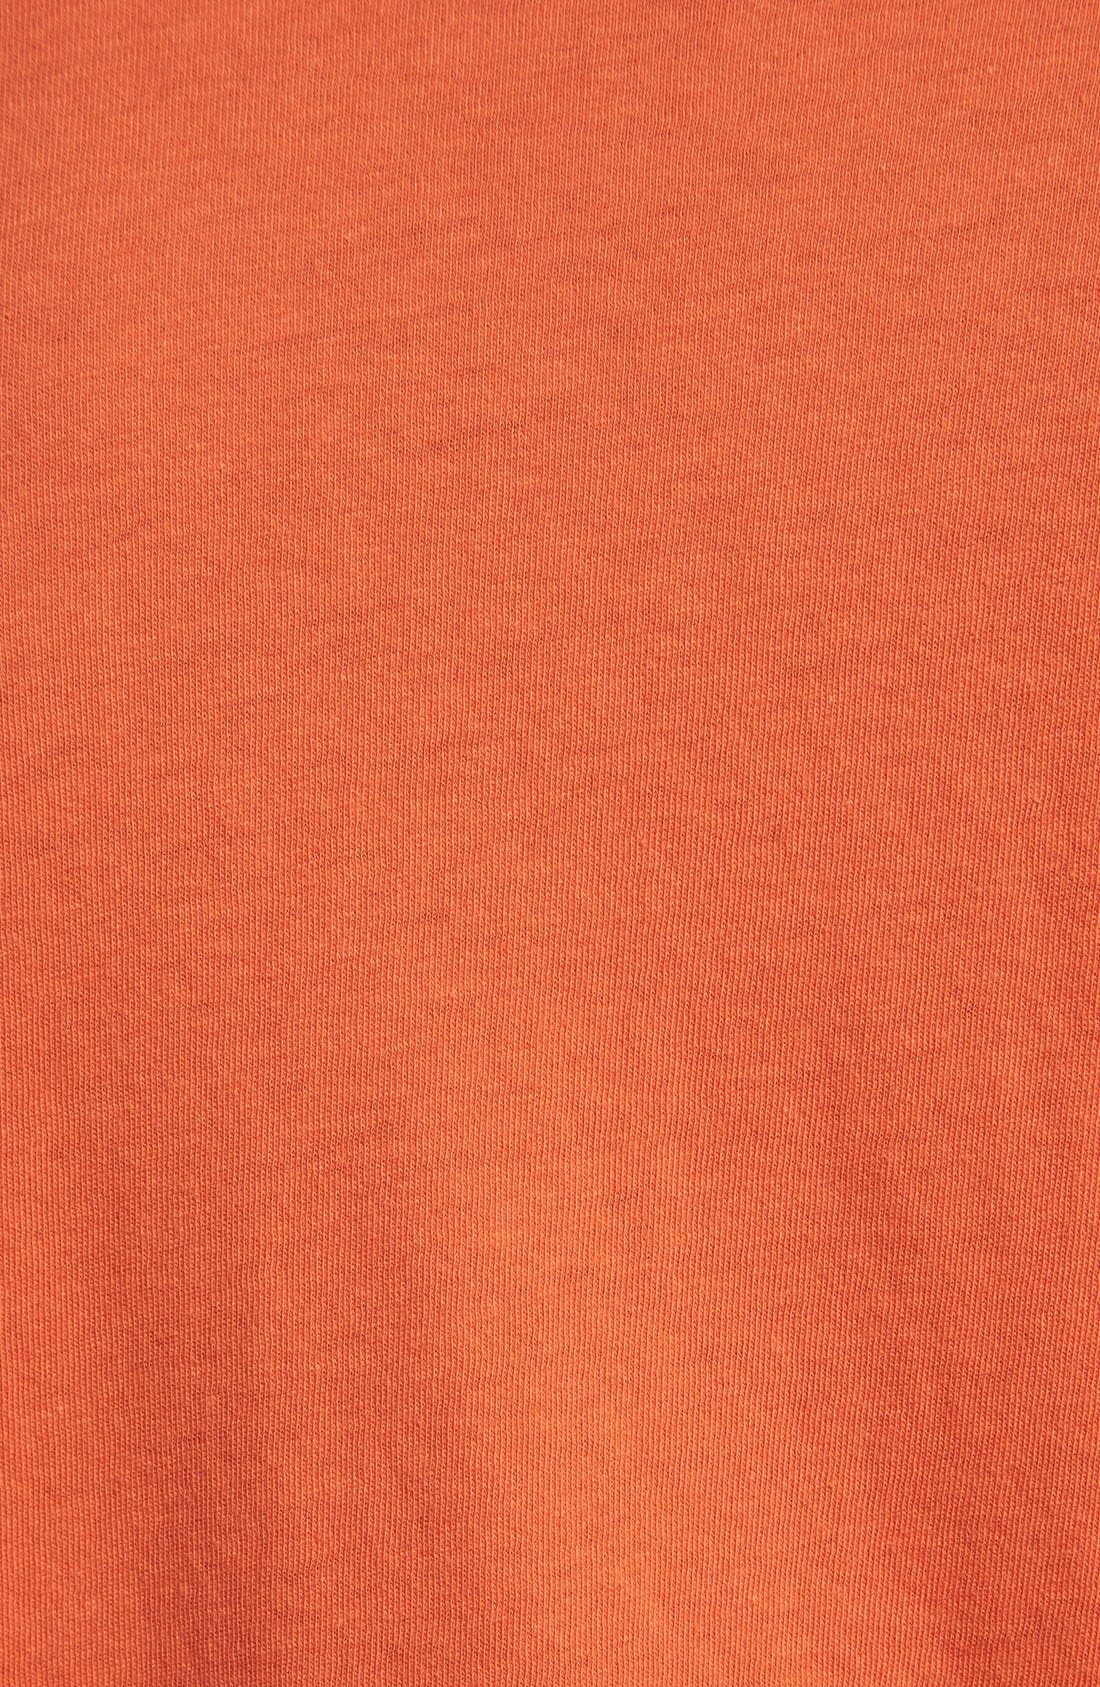 Alternate Image 3  - 47 Brand 'Baltimore Orioles - Flanker' Graphic T-Shirt